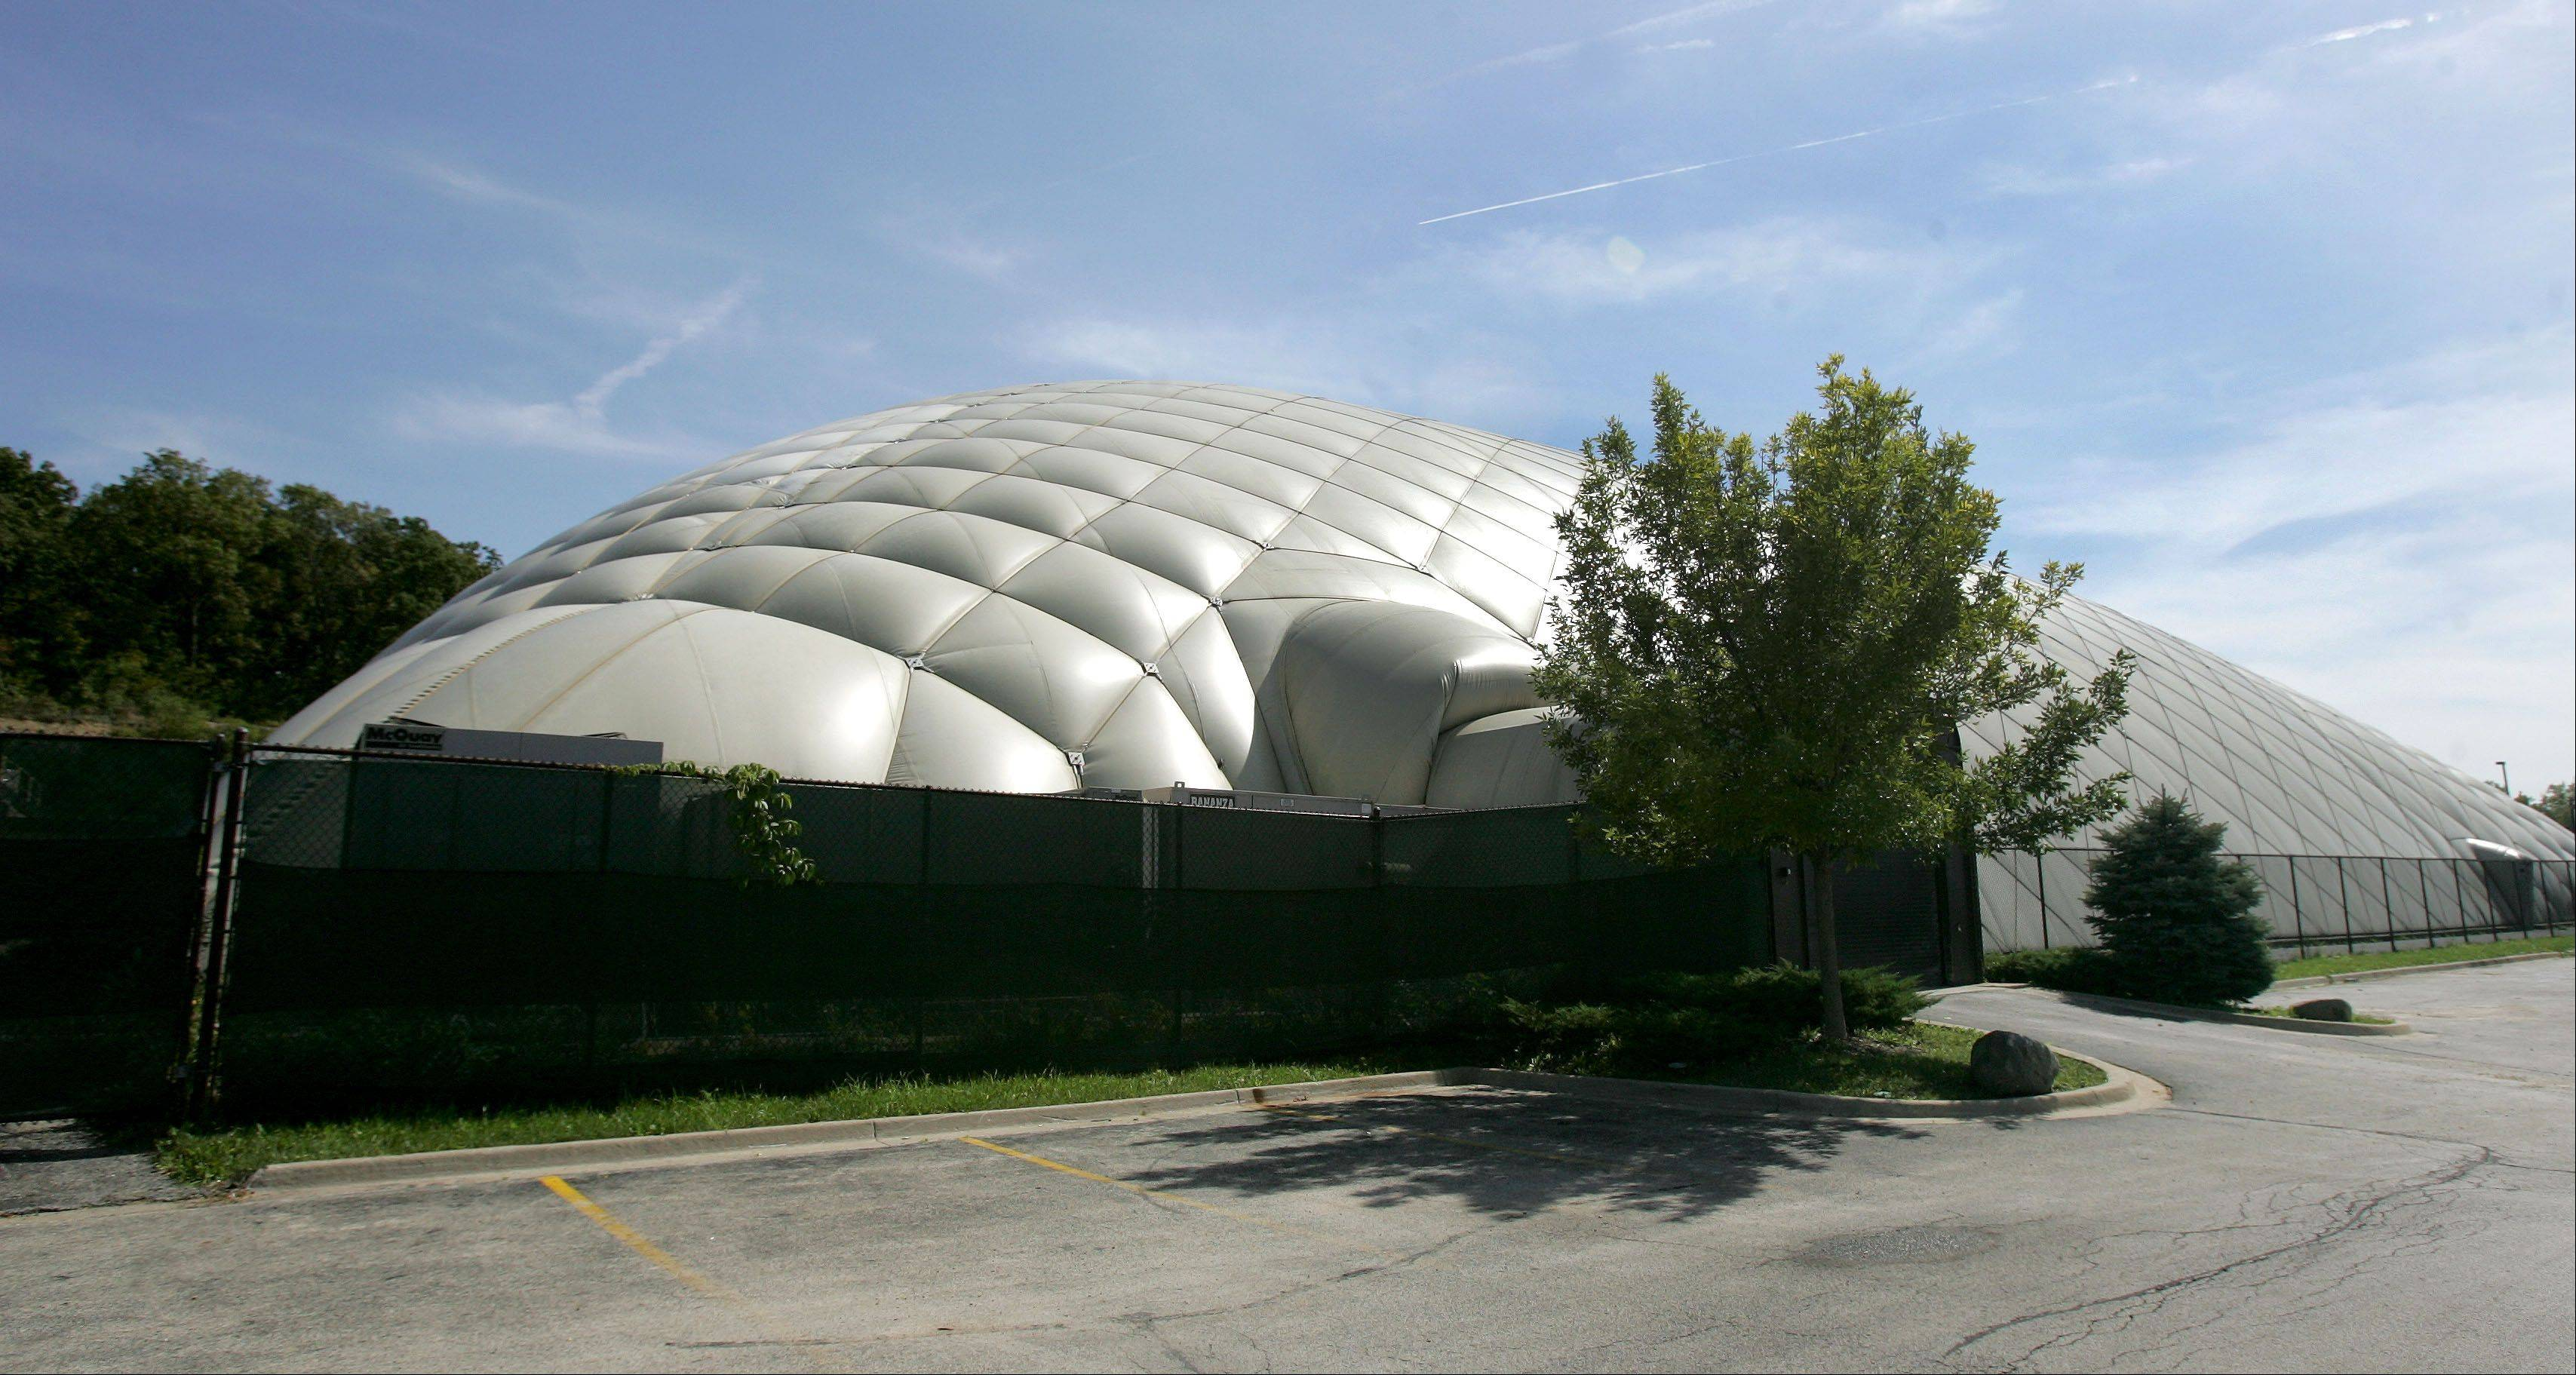 The Bolingbrook Sports Dome, formerly Ditka's Sport Dome, was bought by a new owner earlier this year. It is currently being renovated and will reopen later this year.